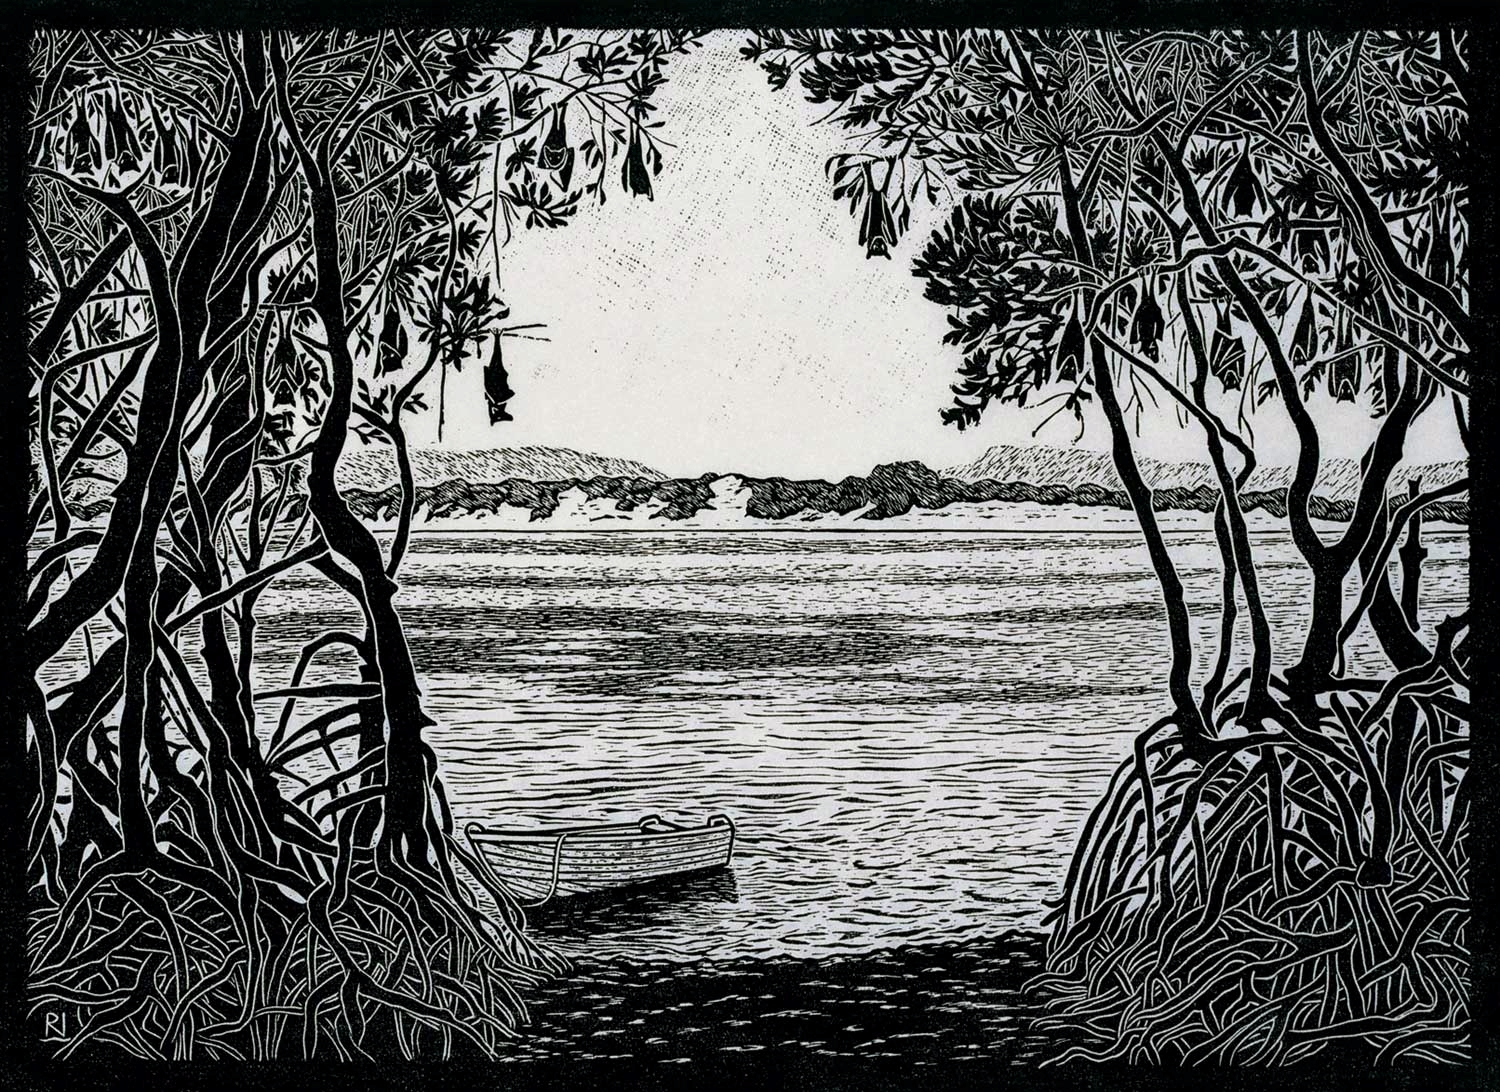 FLYING FOX CAMP ENDEAVOUR RIVER  40 X 54 CM, EDITION OF 50  LINOCUT ON HANDMADE JAPANESE PAPER  $950